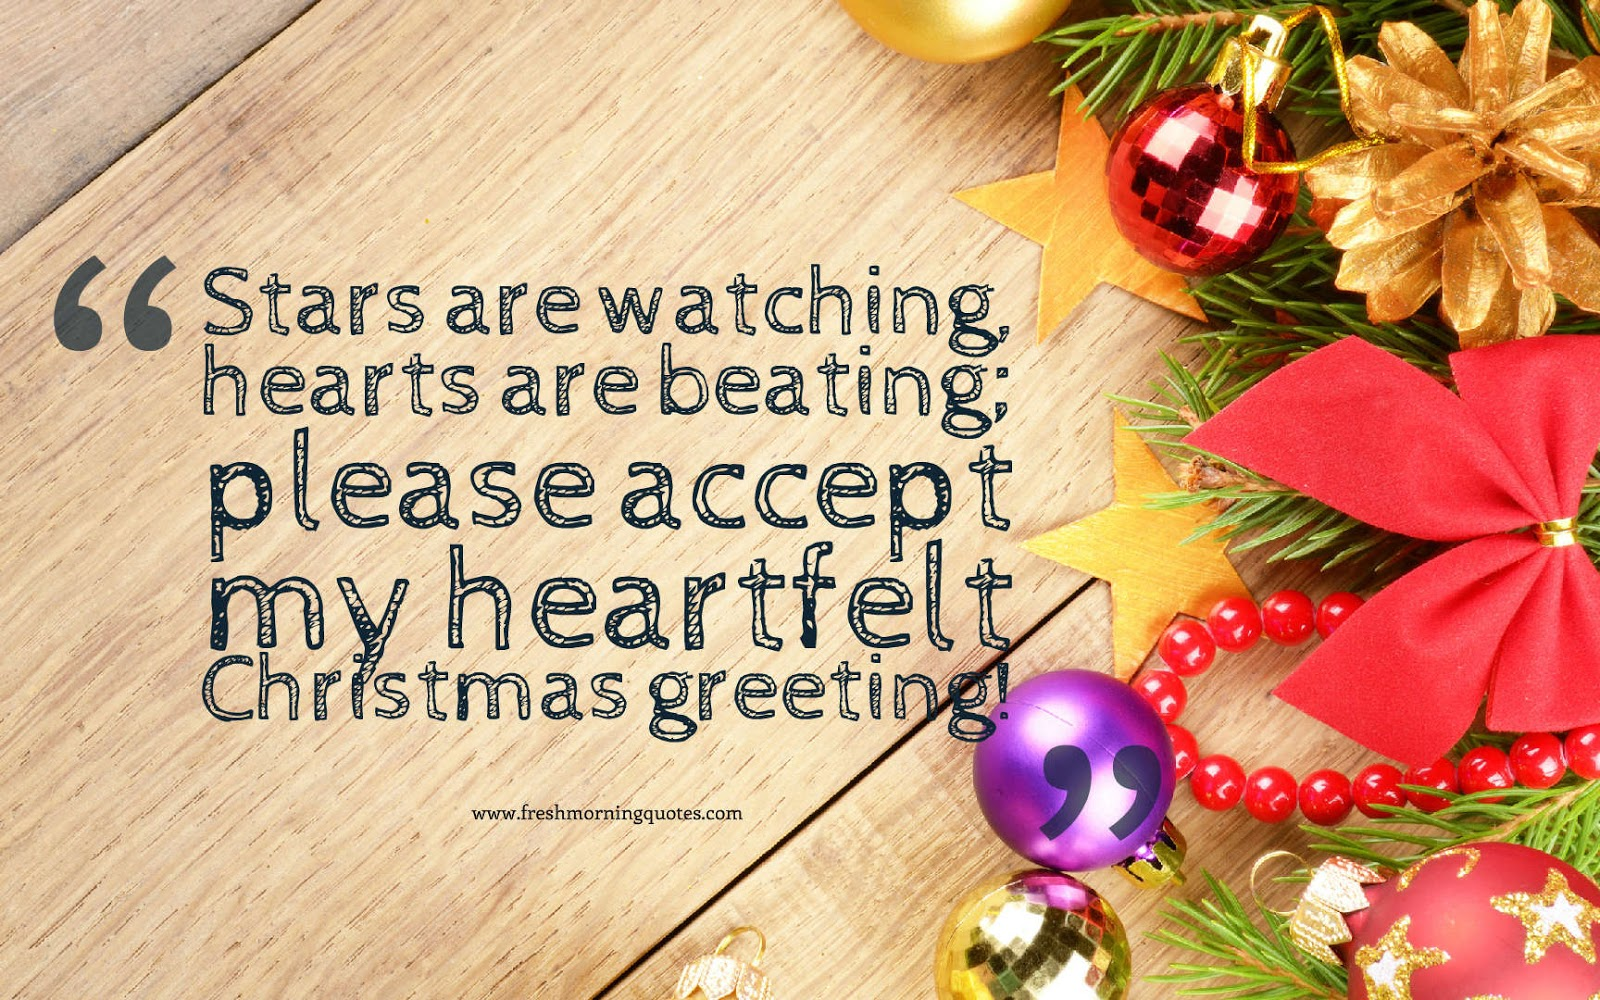 my heartfelt Christmas greetings